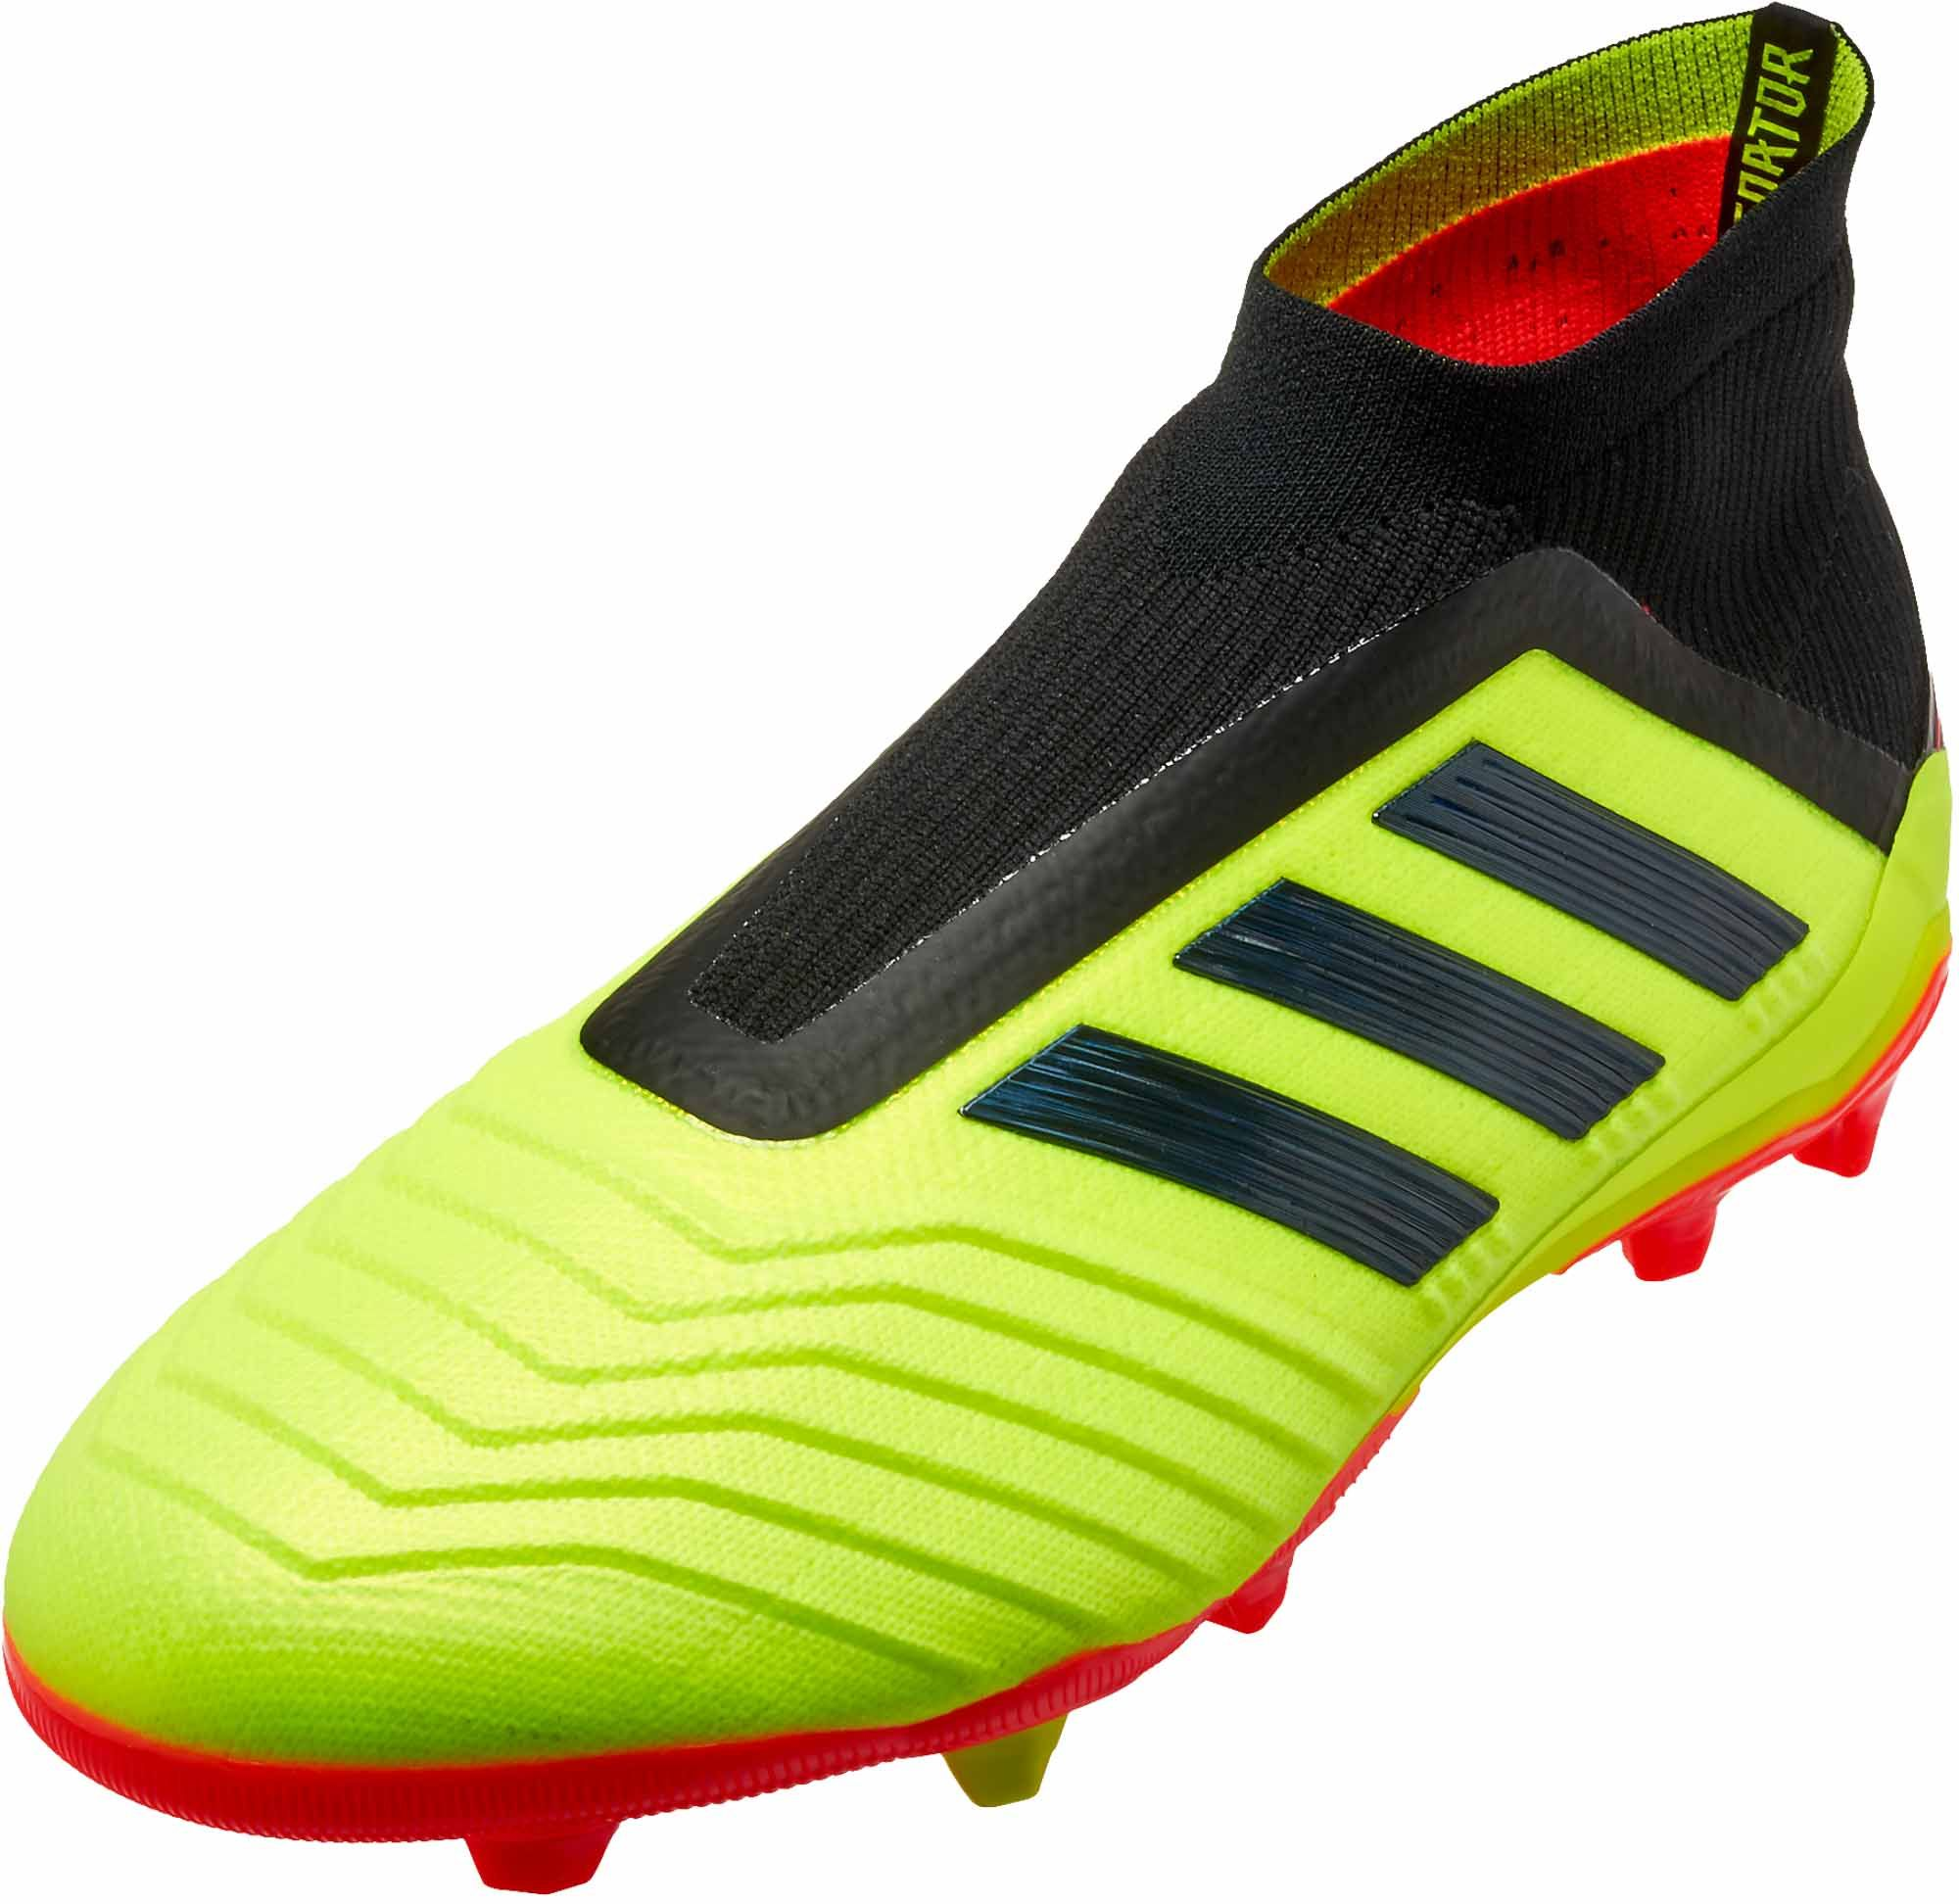 New Adidas Kids Predator 18+ FG Laceless Football Boots Unity Ink Aero  Green Hi-Res Green Kids Adidas Predator 18+  Kids Football Boots Adidas Kids  Football ... 87165e1ce